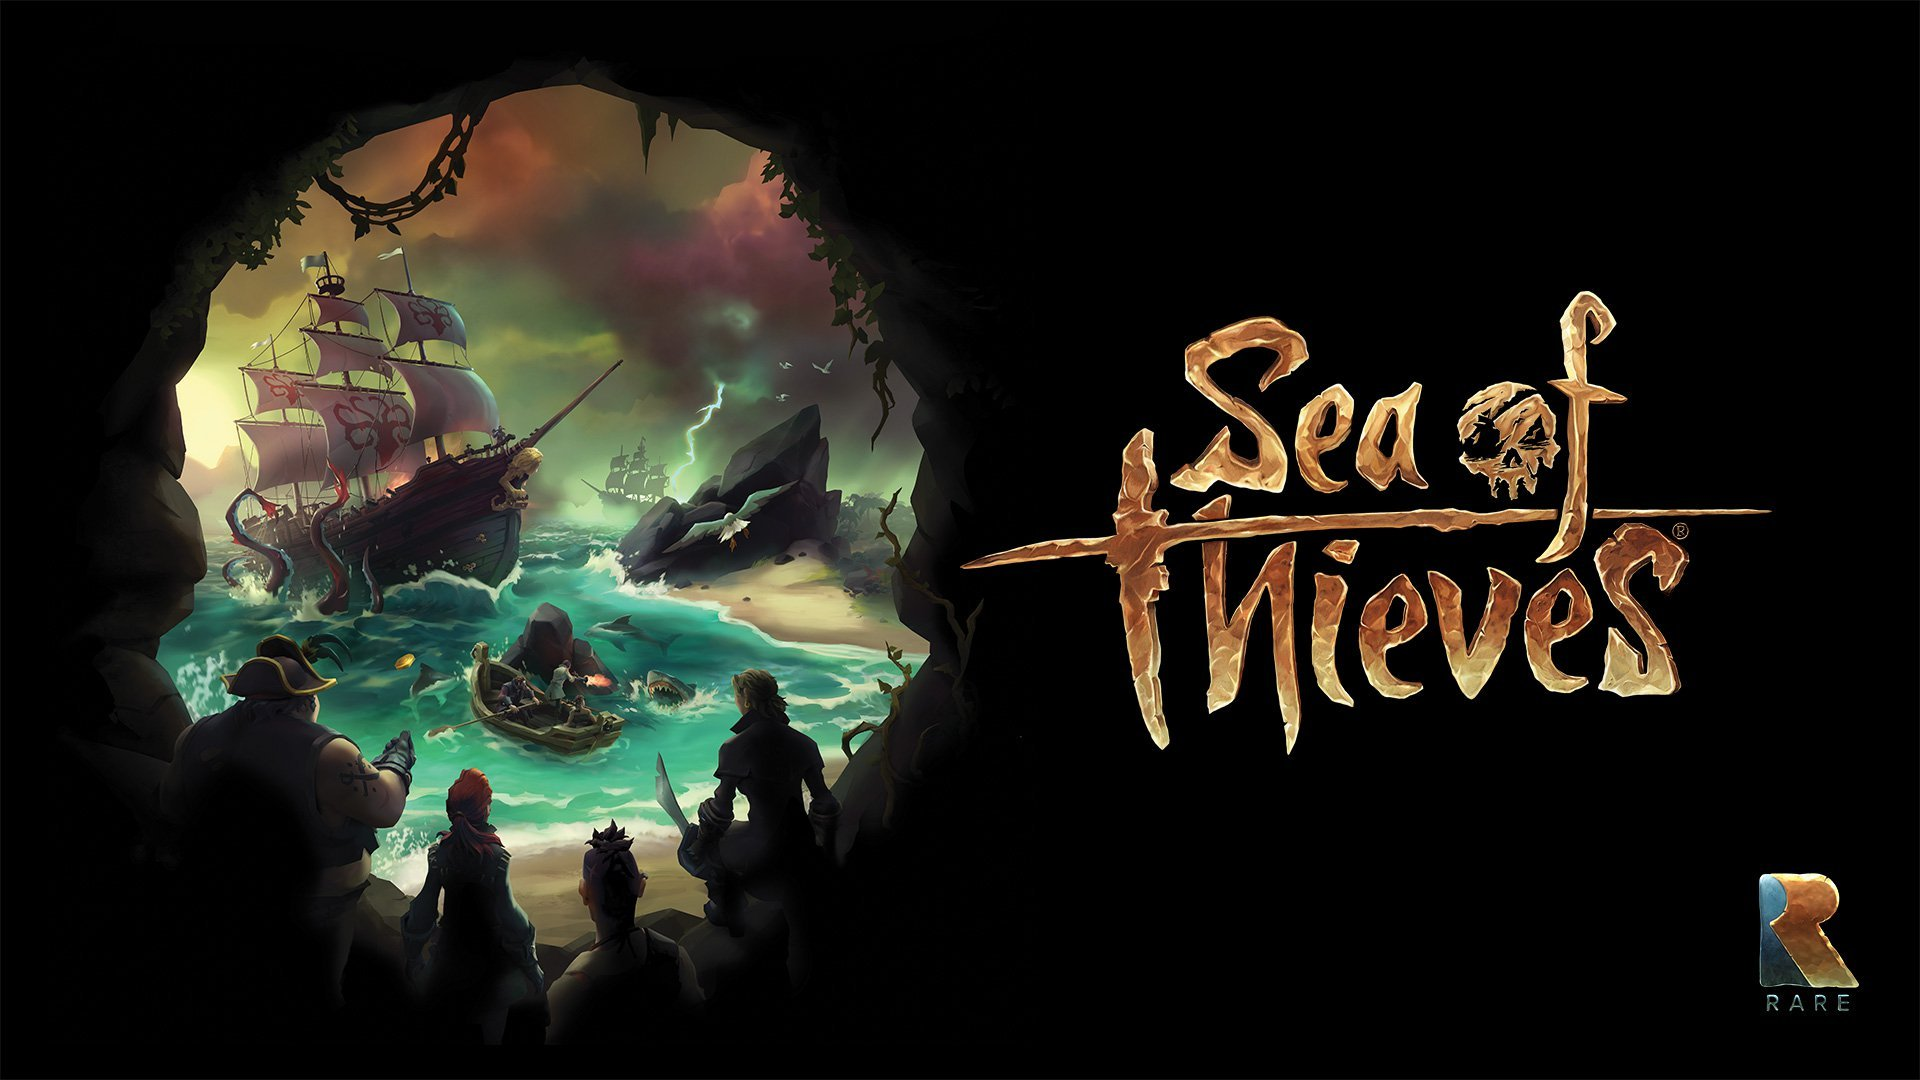 Developer Update Teases New Sea of Thieves Content